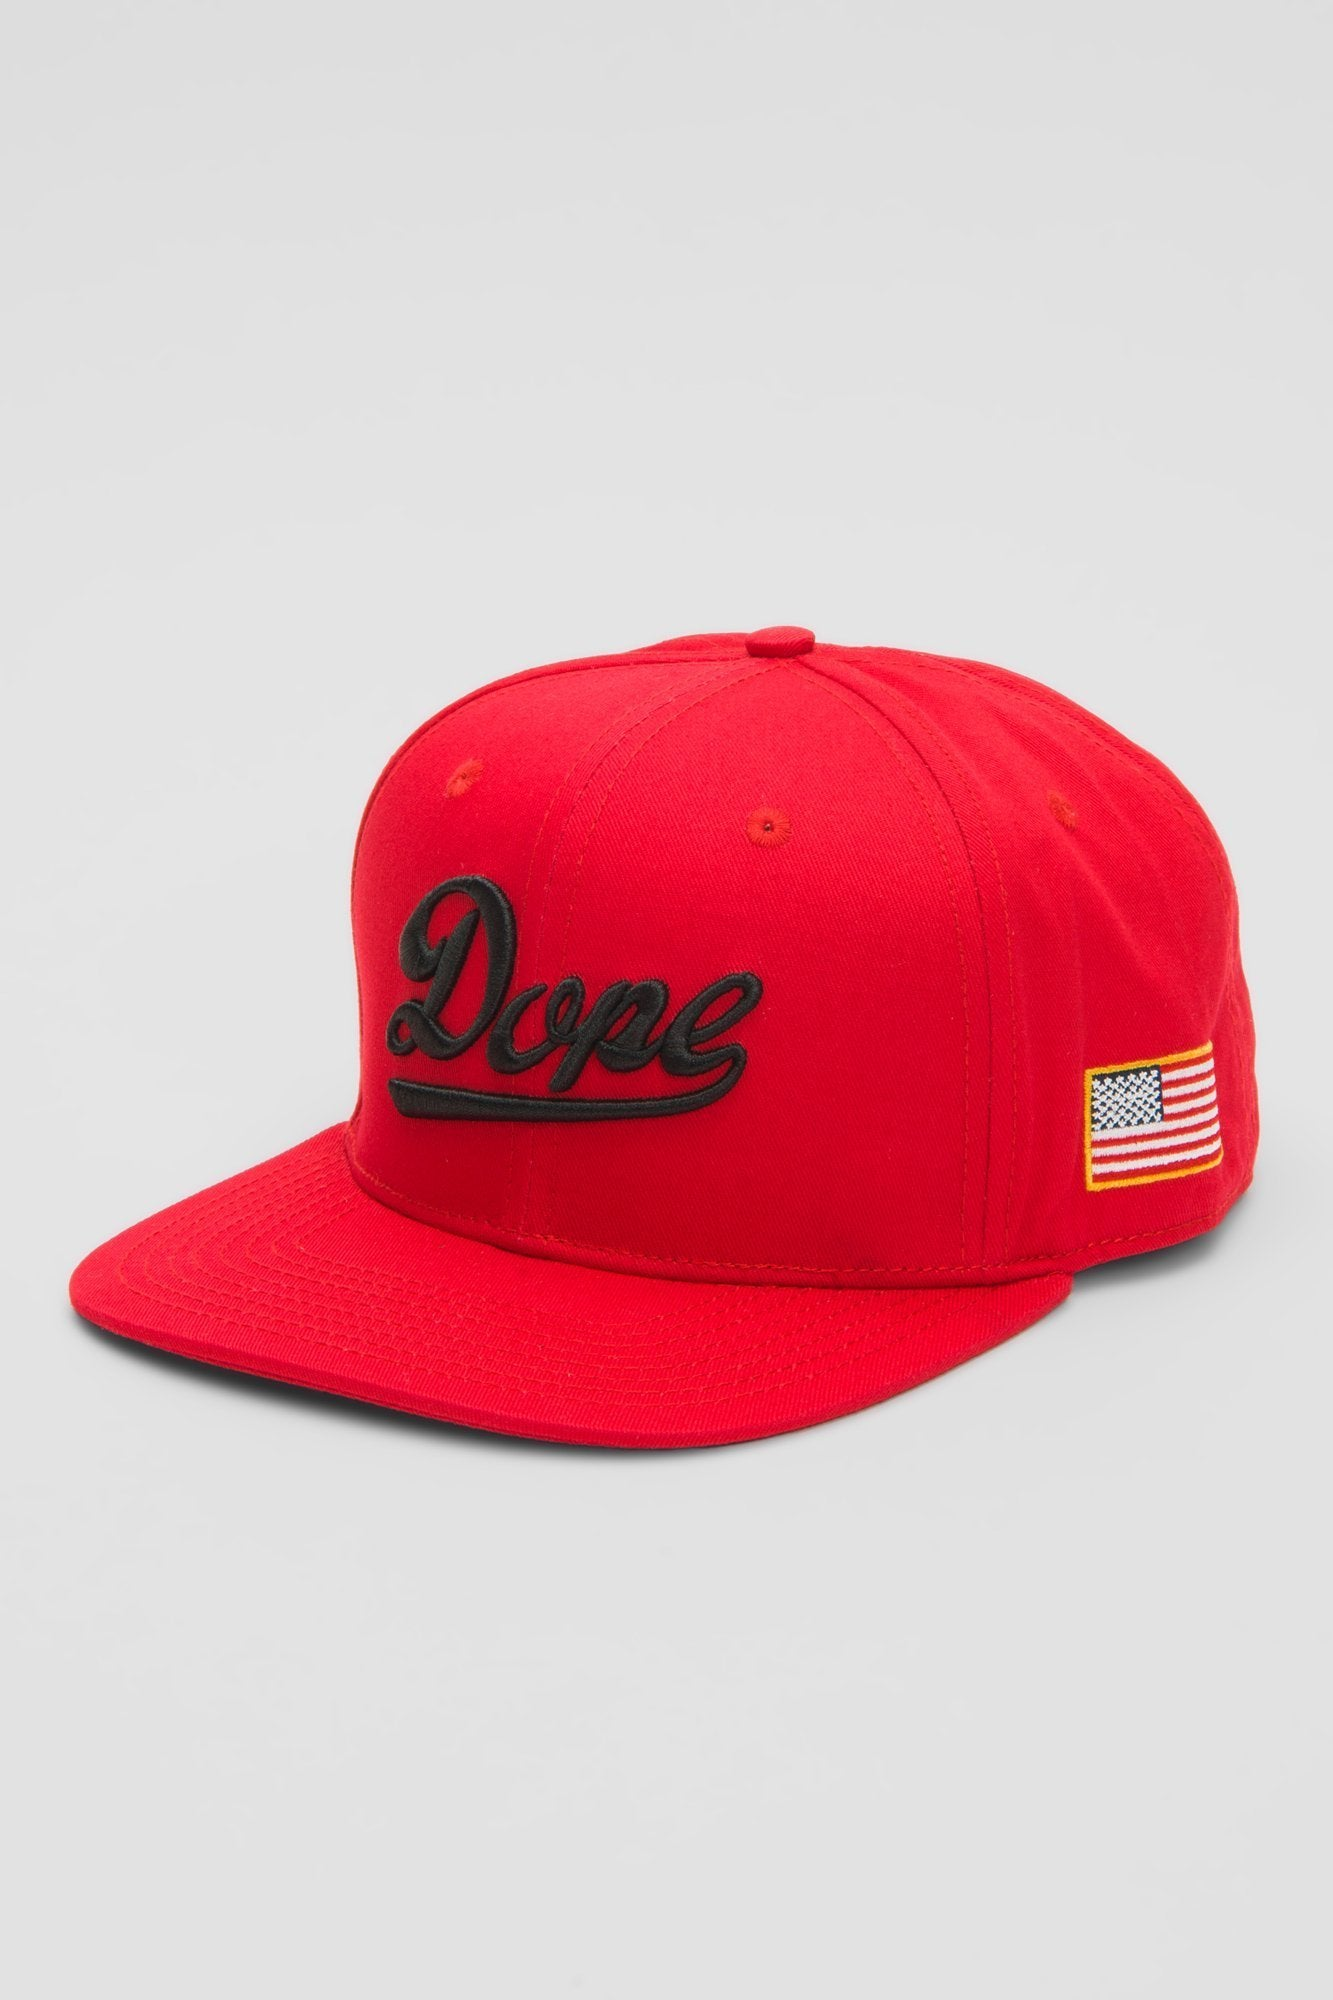 DOPE Infield Snapback #Red